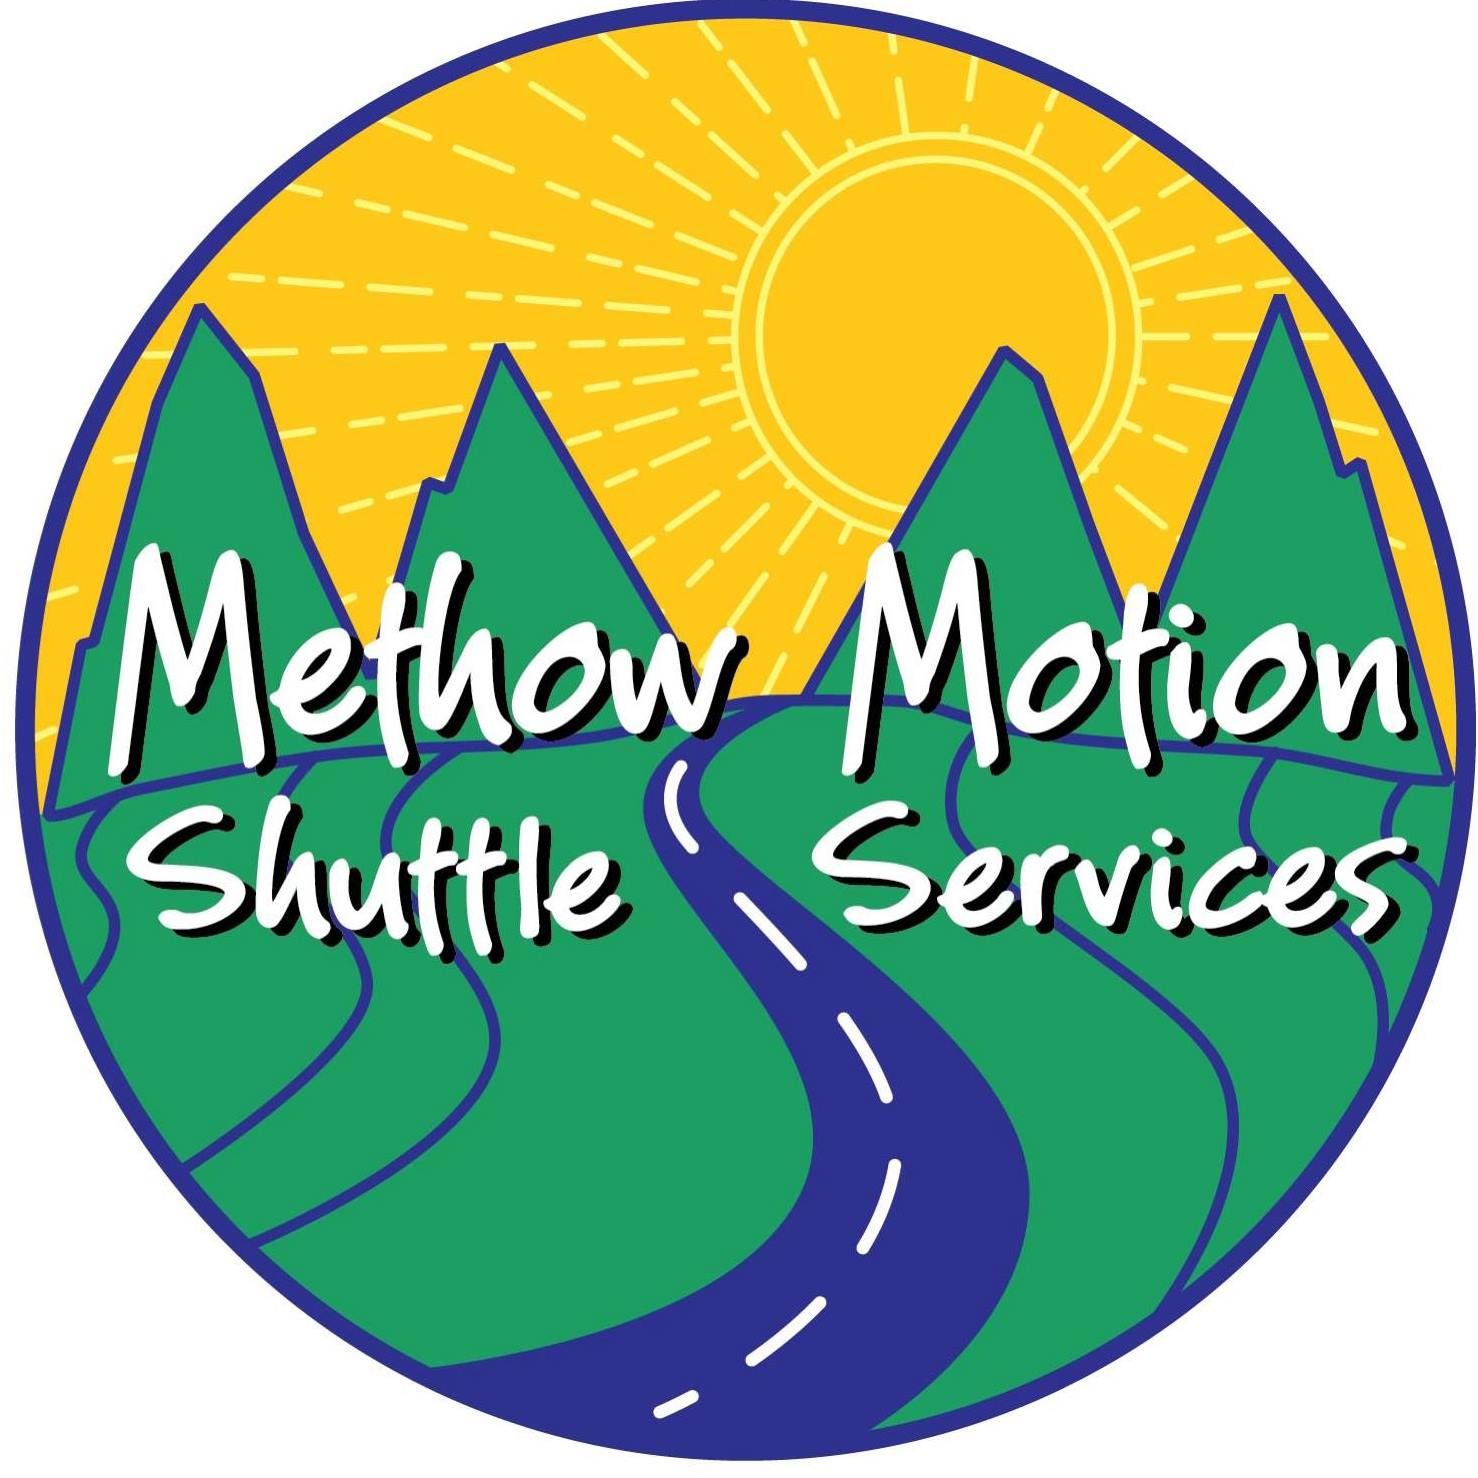 methow motion shuttle services in Winthrop WA and Twisp WA